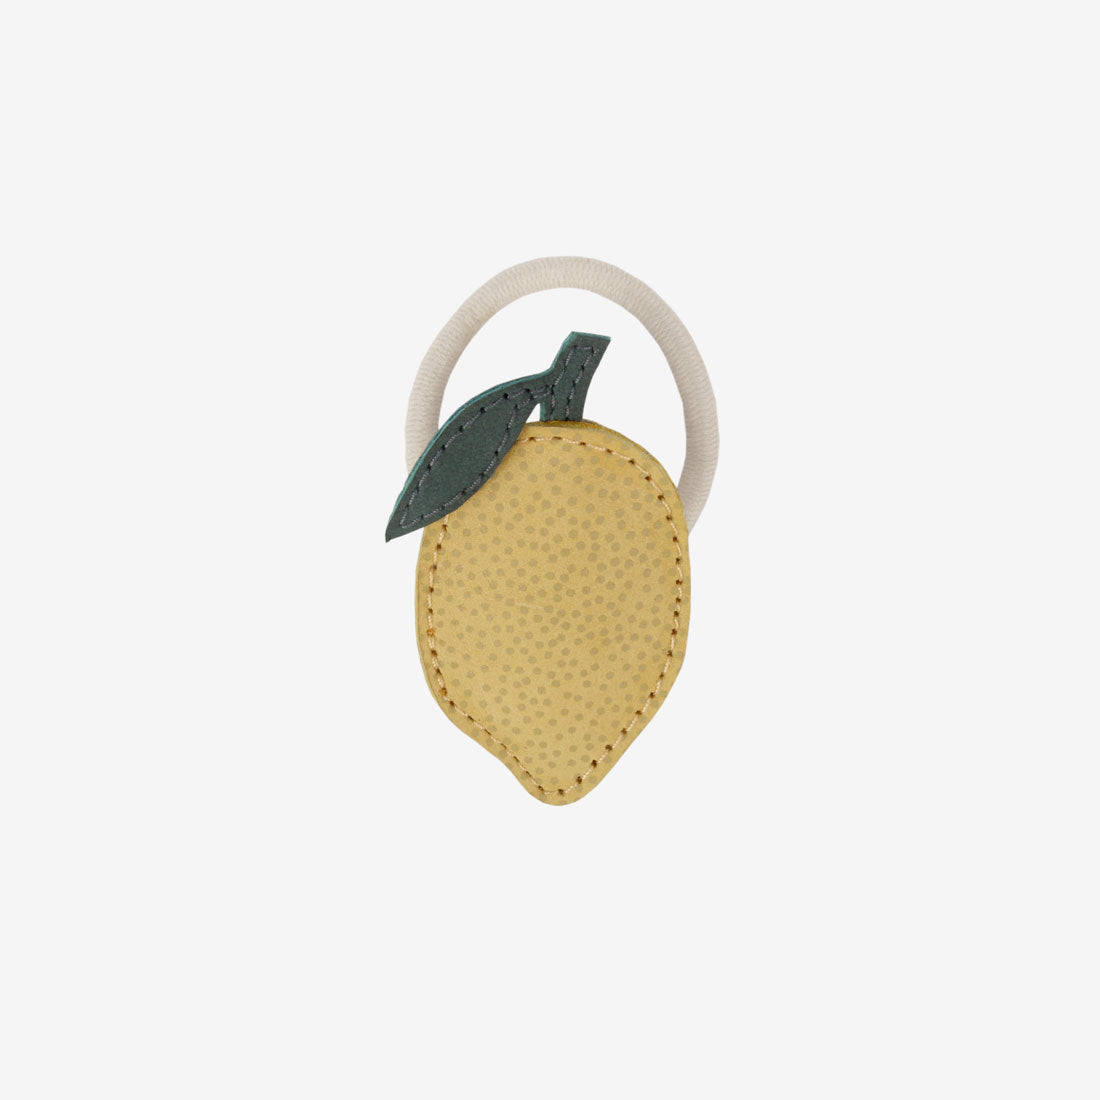 Nanoe Fruit Hair Tie - Lemon